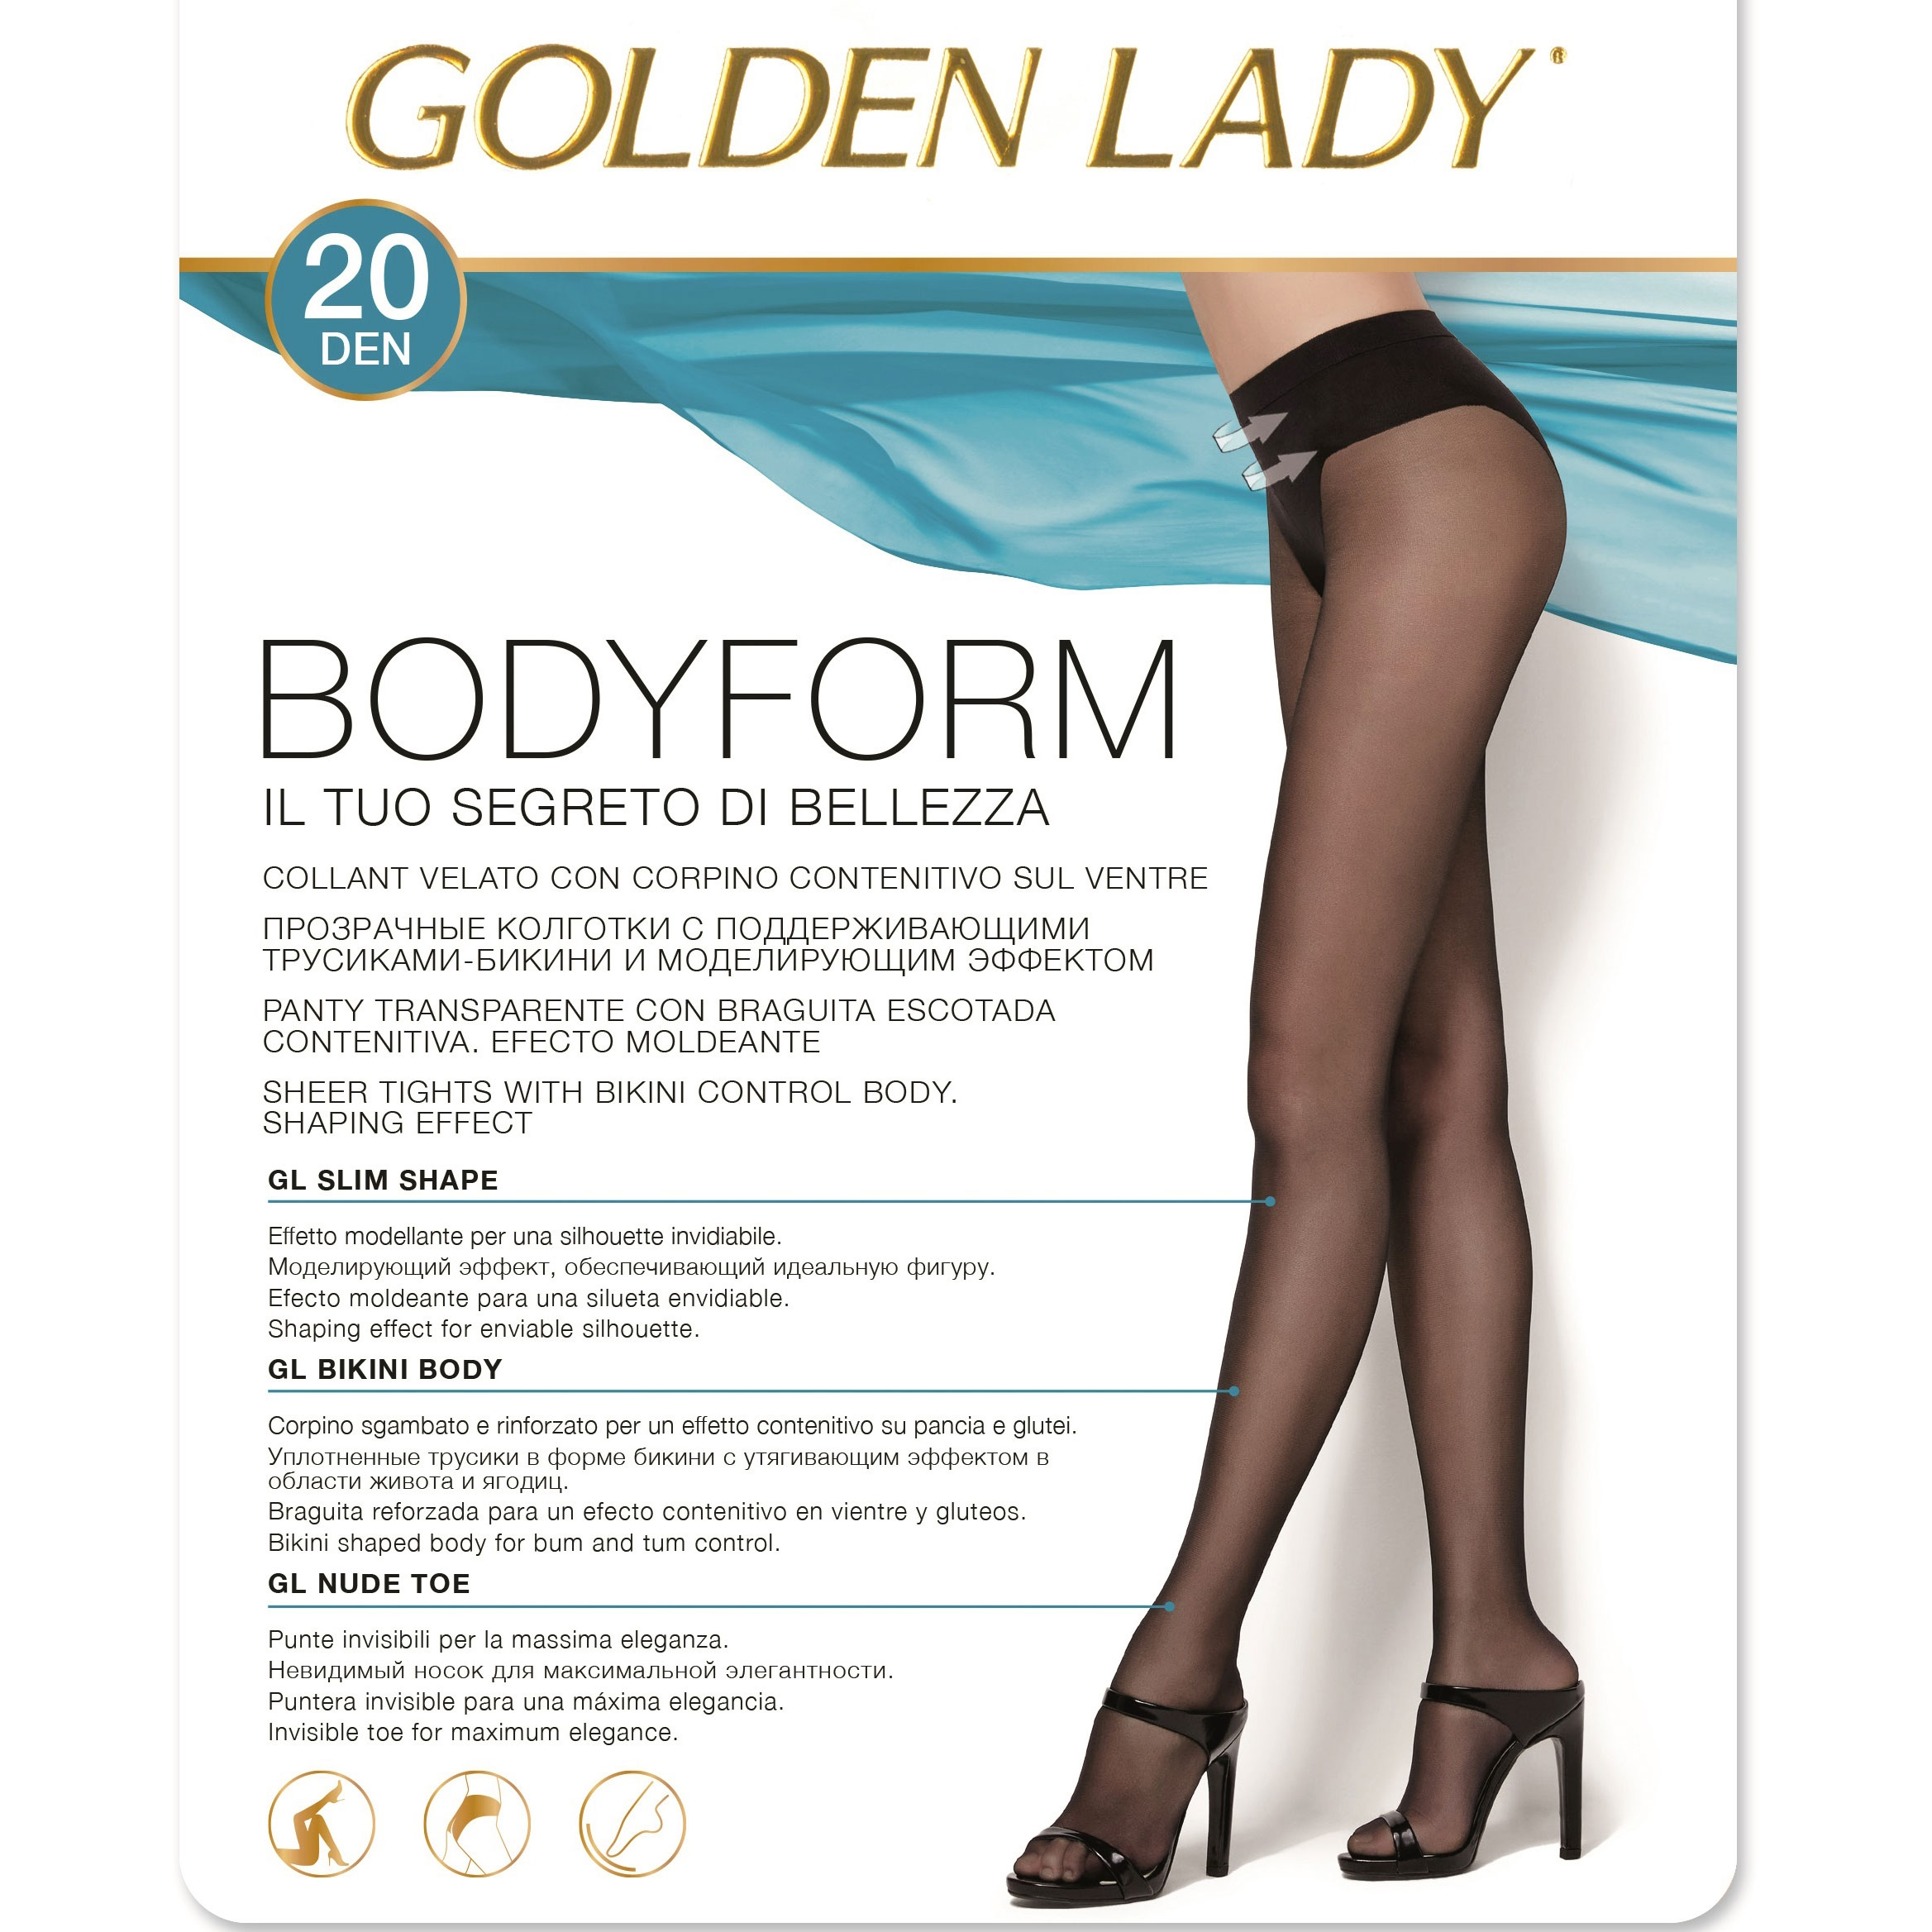 30 DEN Donna GOLDEN LADY Collant